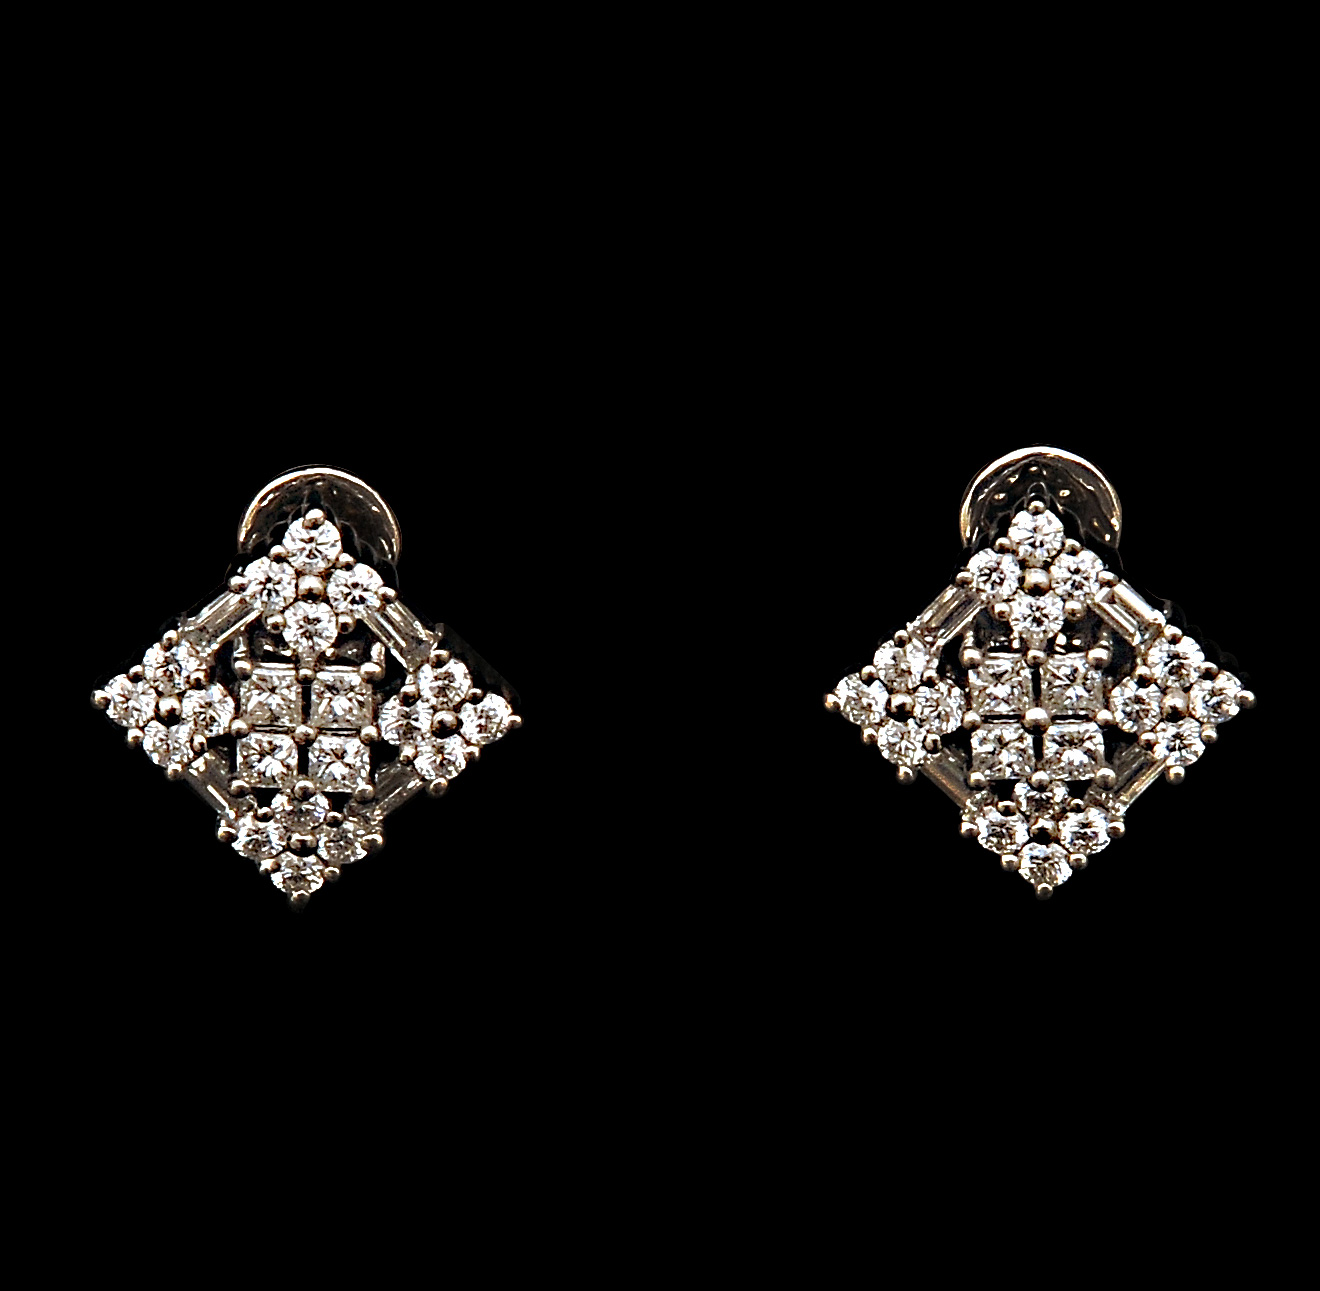 Sale News And Shopping Details March 2012: Sale News And Shopping Details: VBJ Platinum Diamond